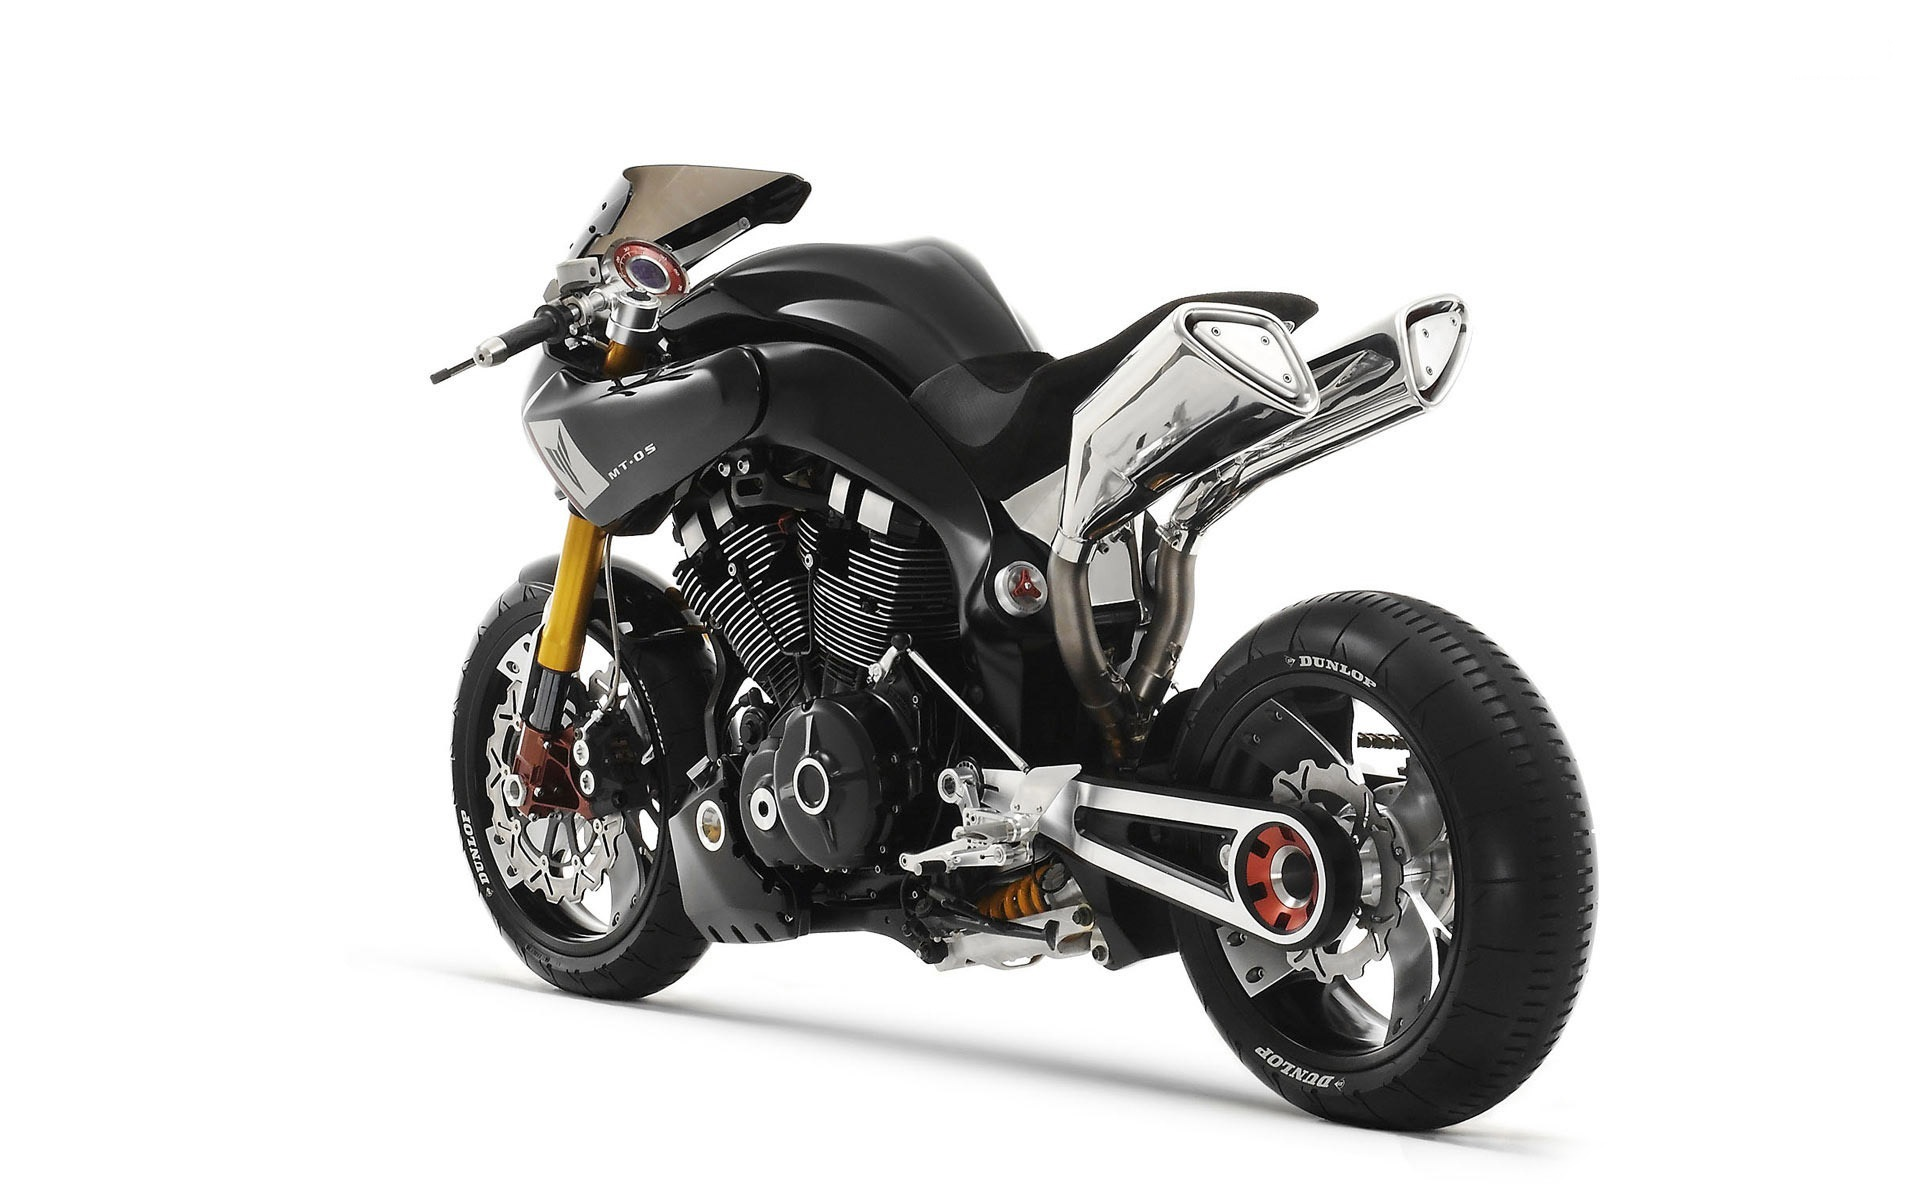 Yamaha Tesseract Bikes Pictures & Wallpapers